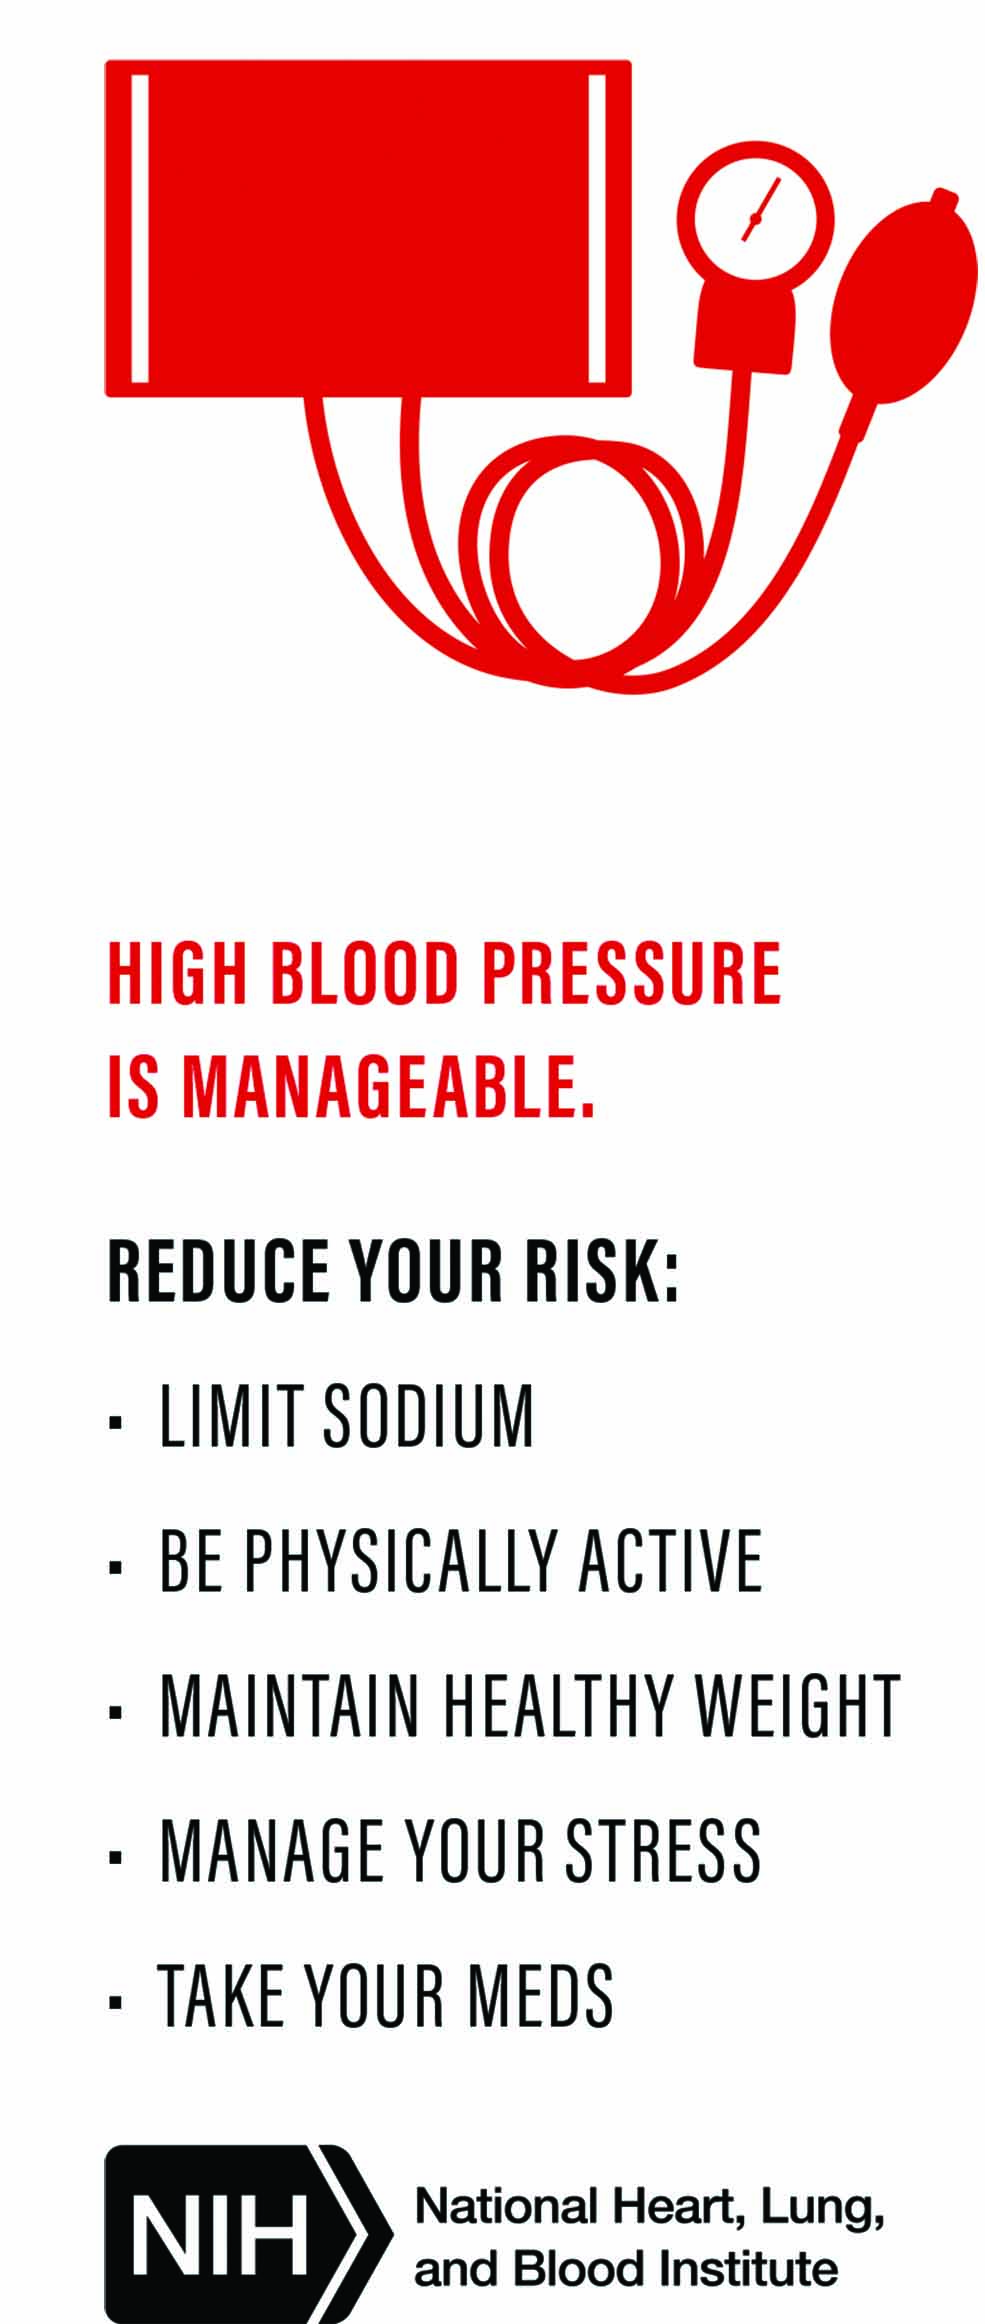 NIH study shows exercise may lower risk of high blood..